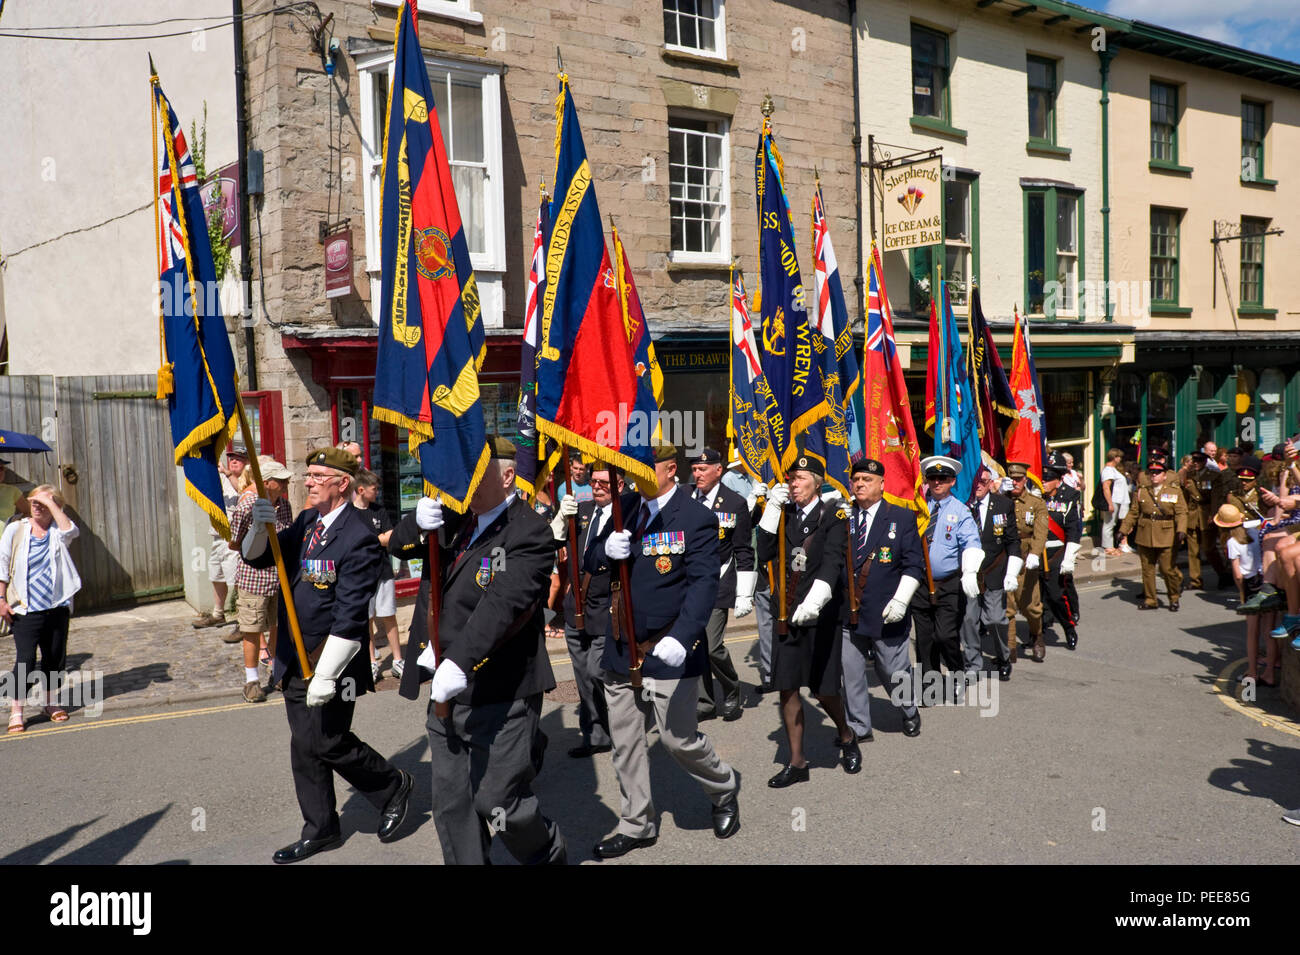 World War One commemorative event parade with military standards at Hay-on-Wye Powys Wales UK - Stock Image